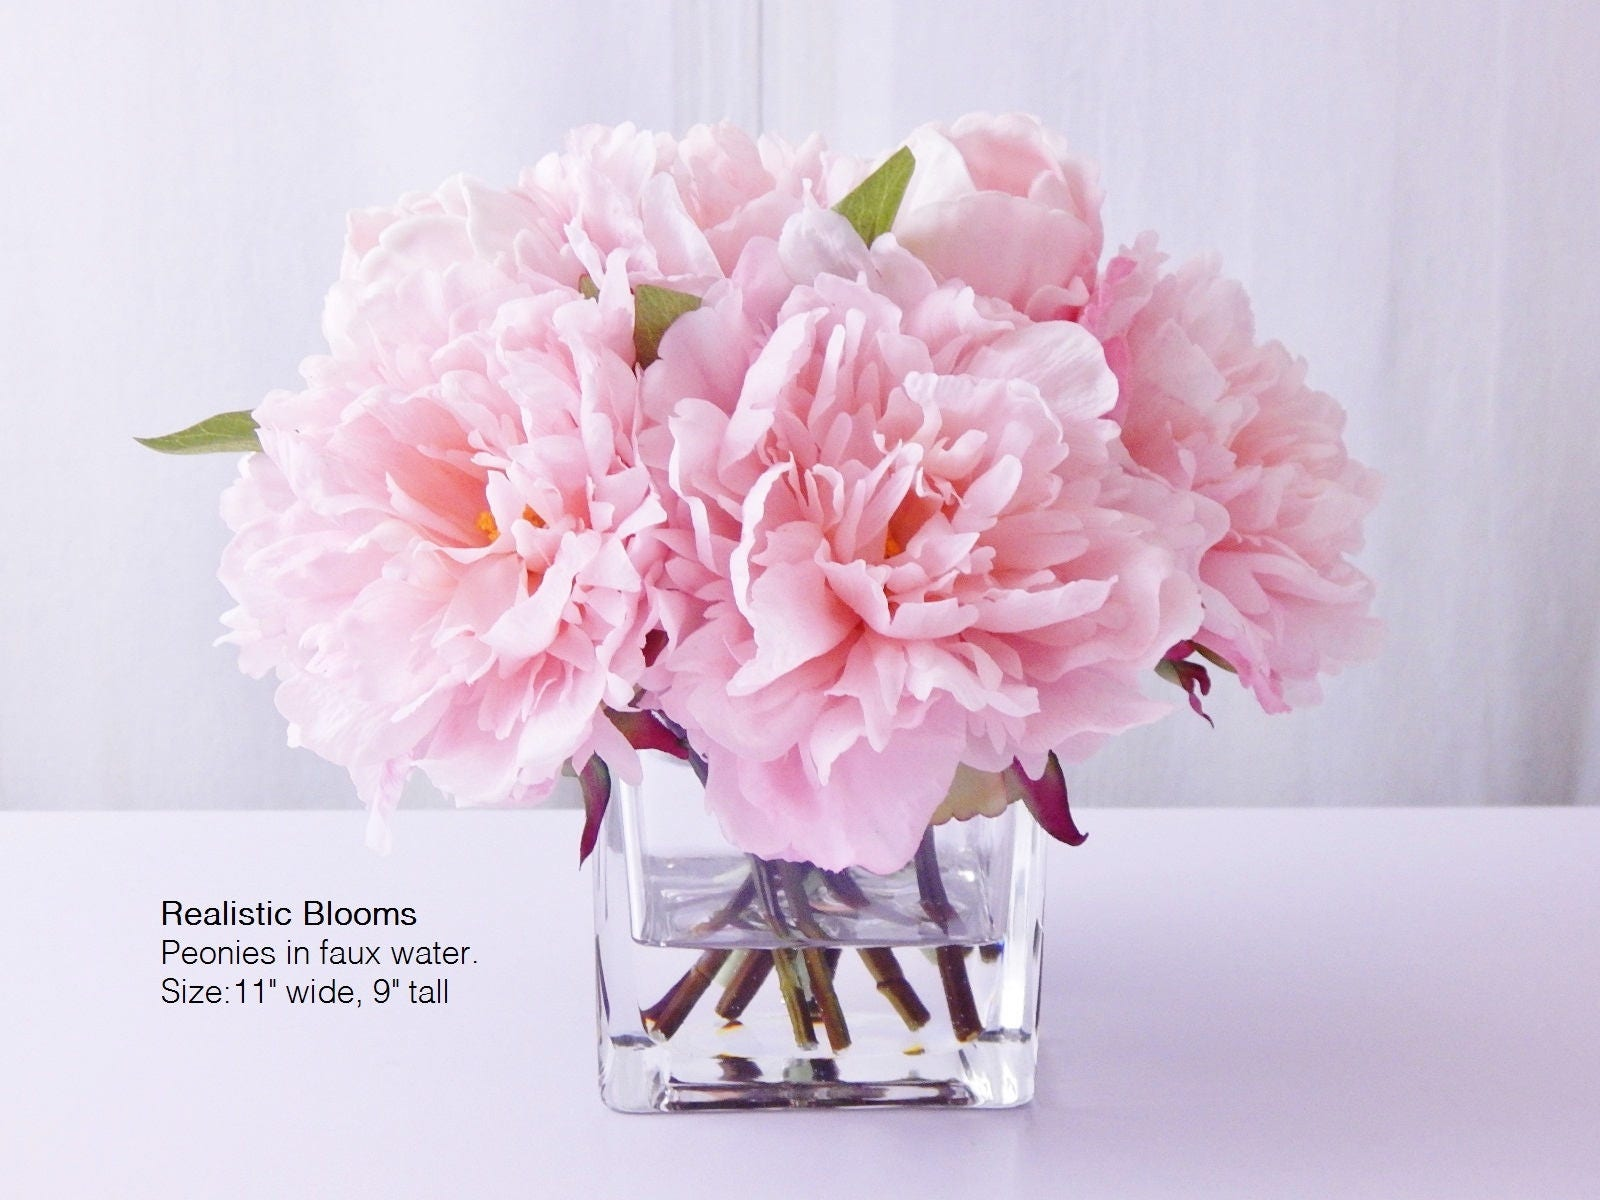 Light pinkblush silk peonypeonies glass vase faux water light pinkblush silk peonypeonies glass vase faux water acrylicillusion real touch flowers floral arrangement centerpiece gift reviewsmspy